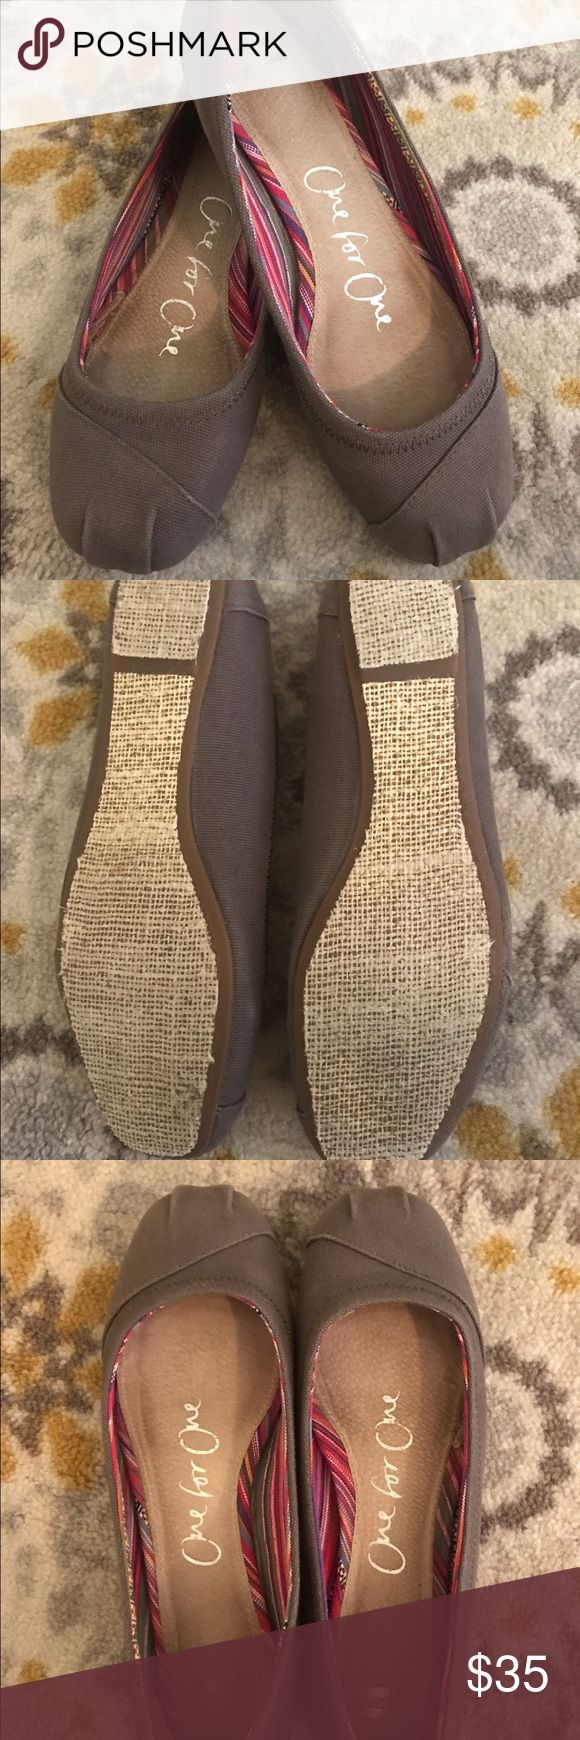 Toms one for one ballet flats Very cute TOMS one for one ballet flats, gray color, very little wear, in great condition. This is a re- posh, I purchased but the 8.5 is too large, I normally wear an 8 in TOMS so I consider this true to size, I just hoped they would fit, 😂. TOMS Shoes Flats & Loafers